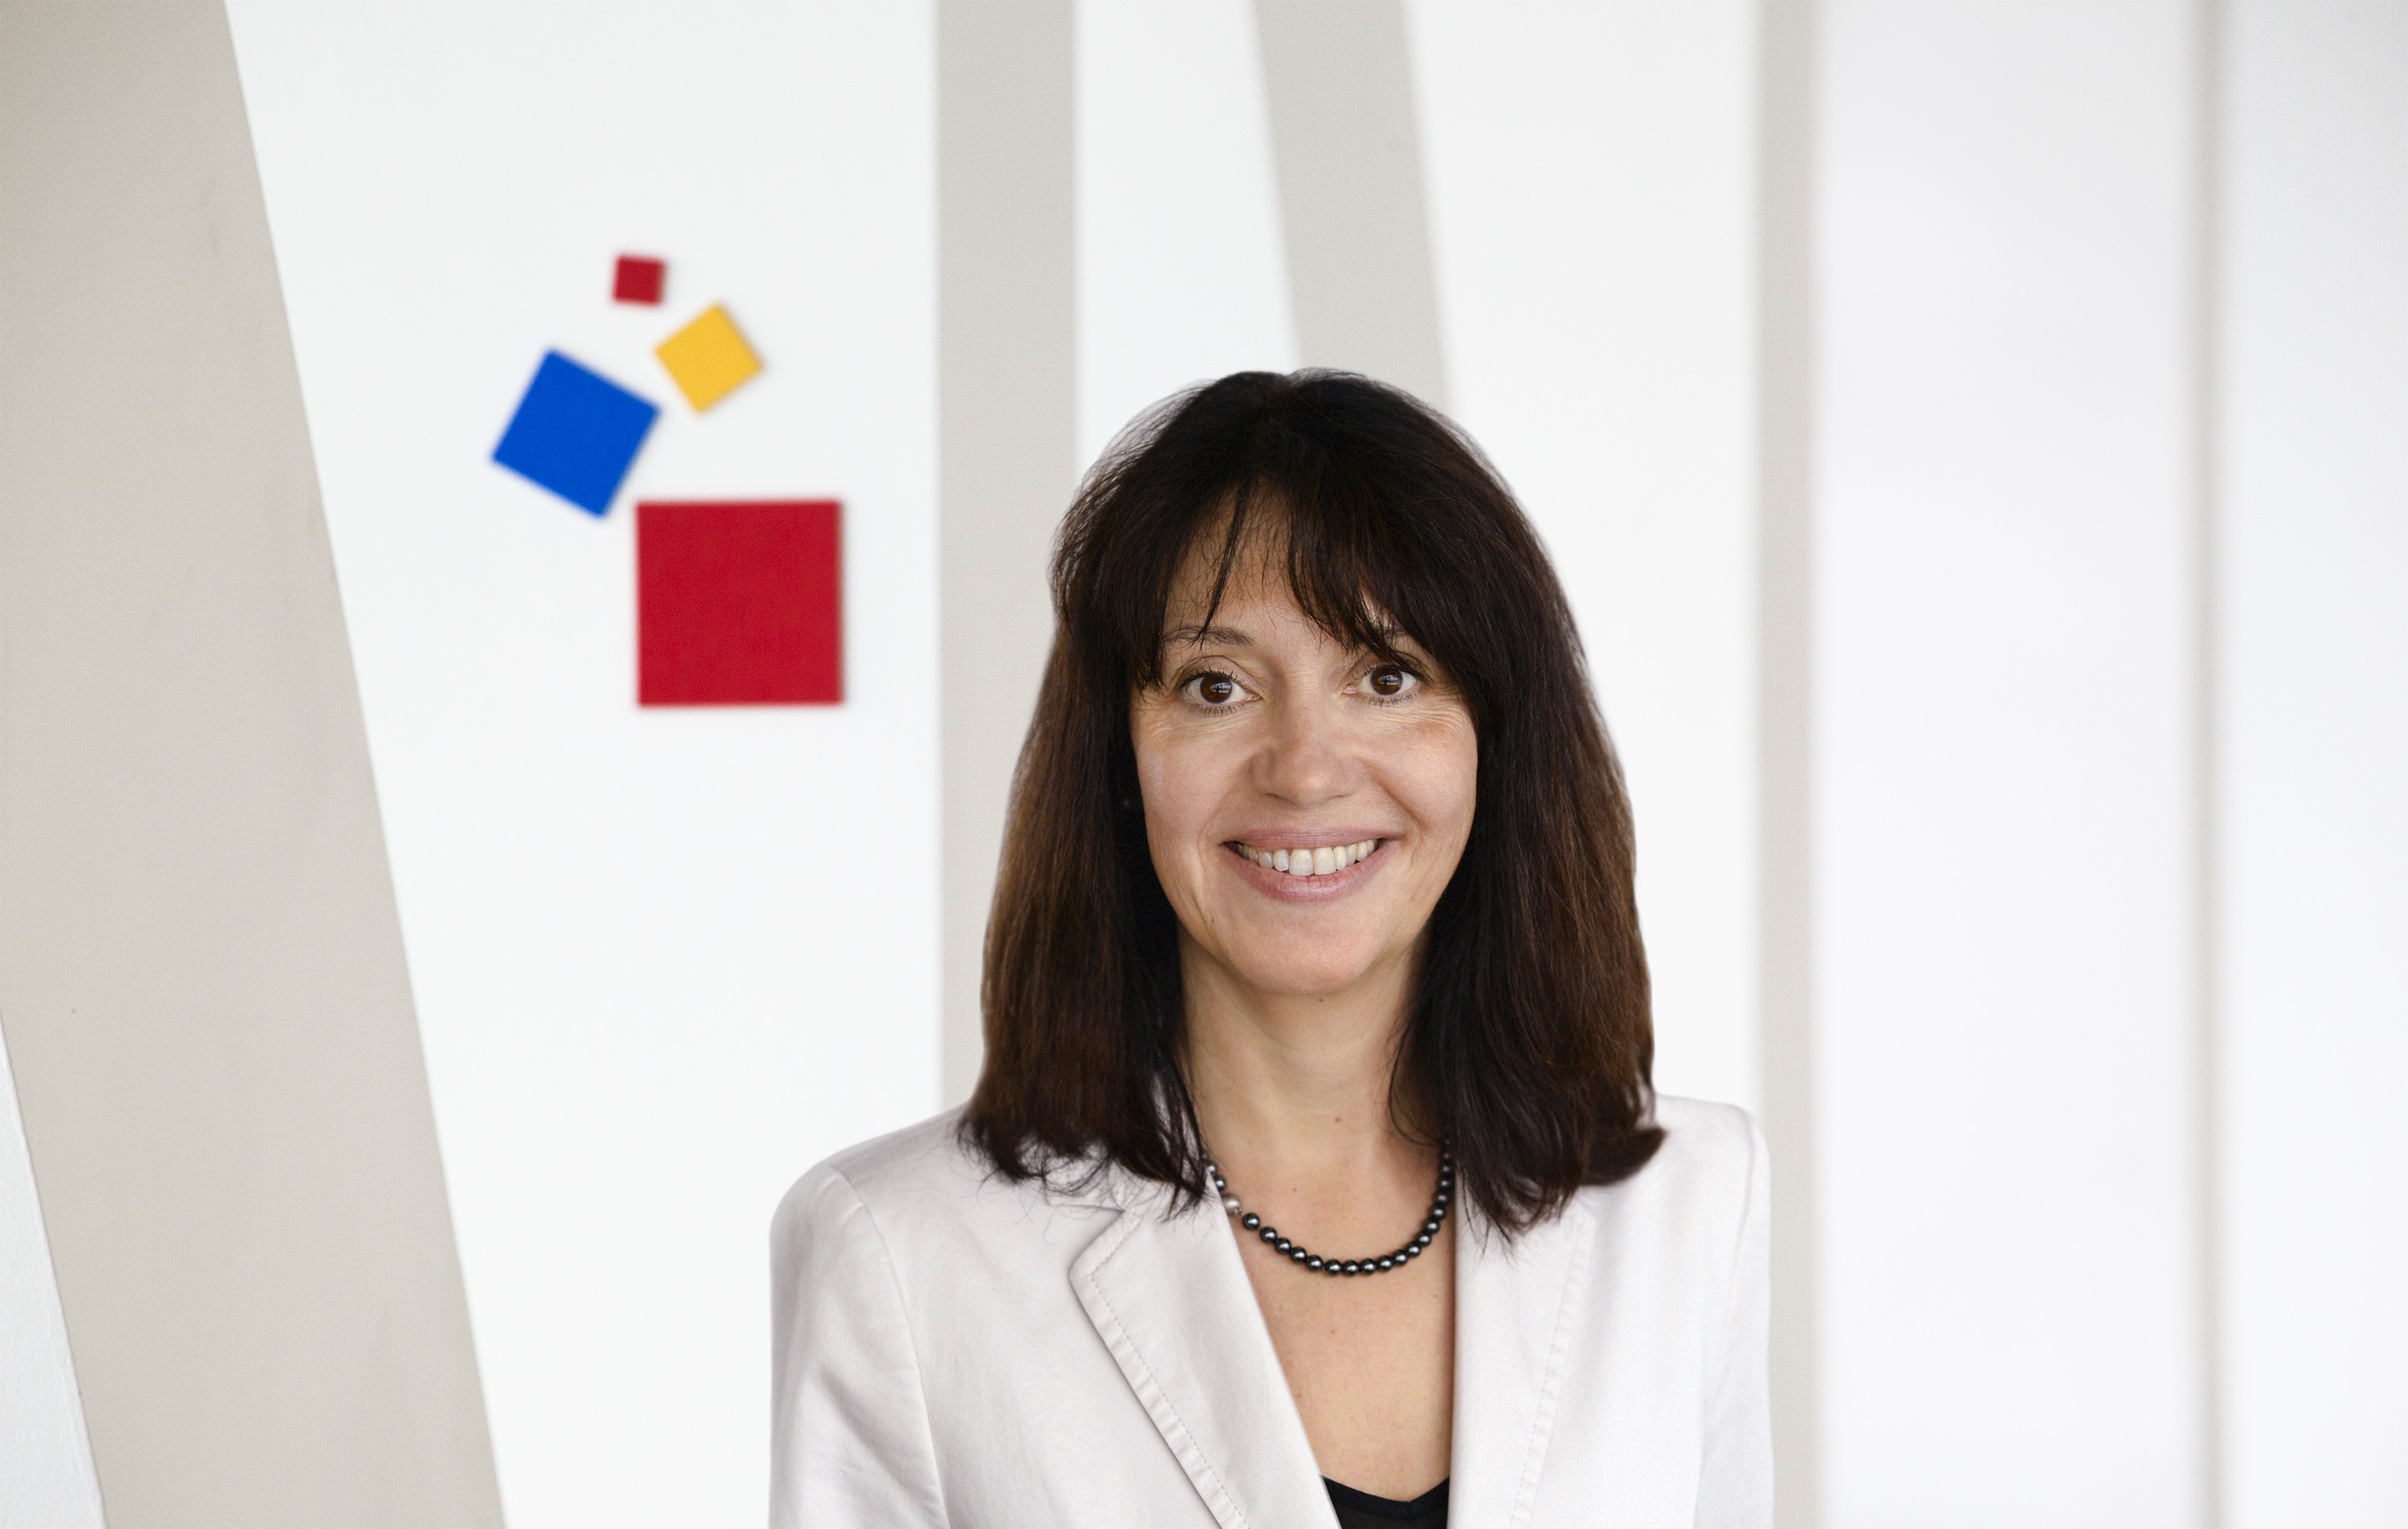 Iris Jeglitza-Moshage, Member of the Board of Management Messe Frankfurt